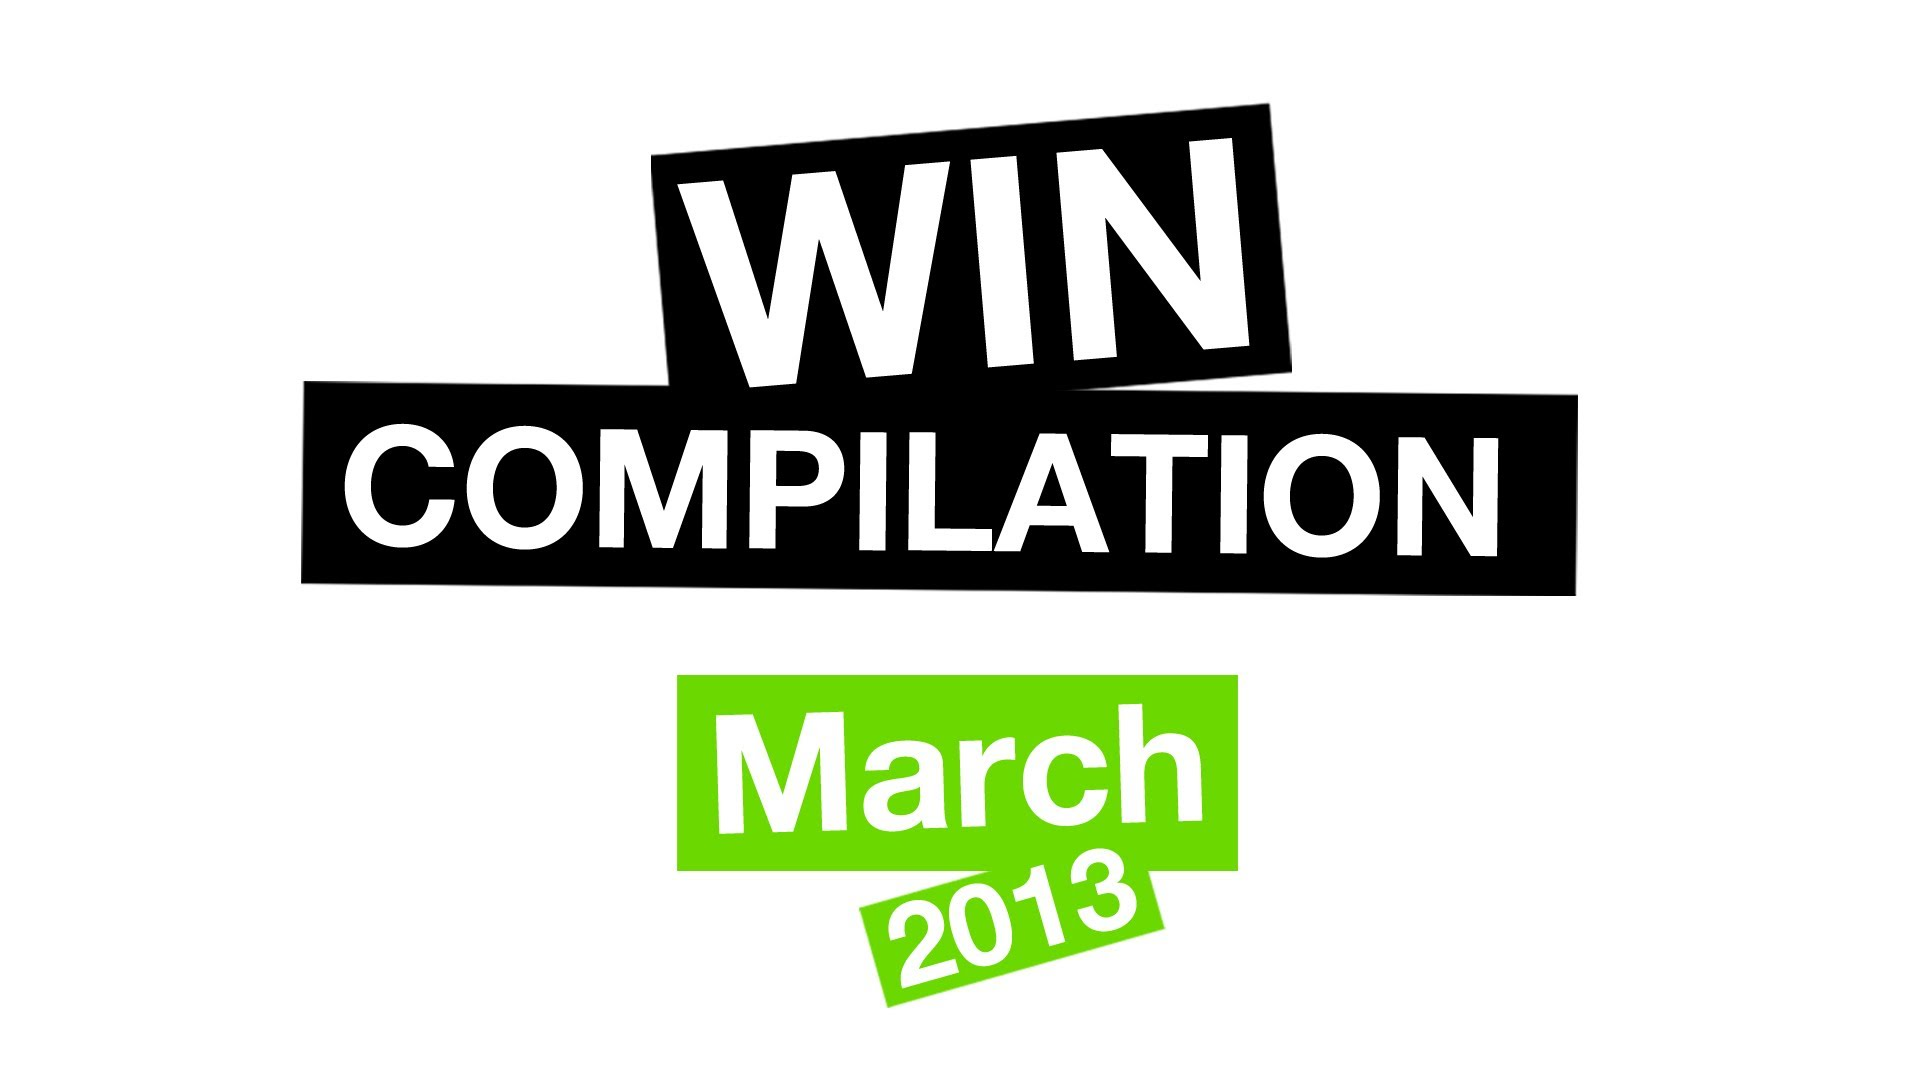 WIN Compilation March 2013